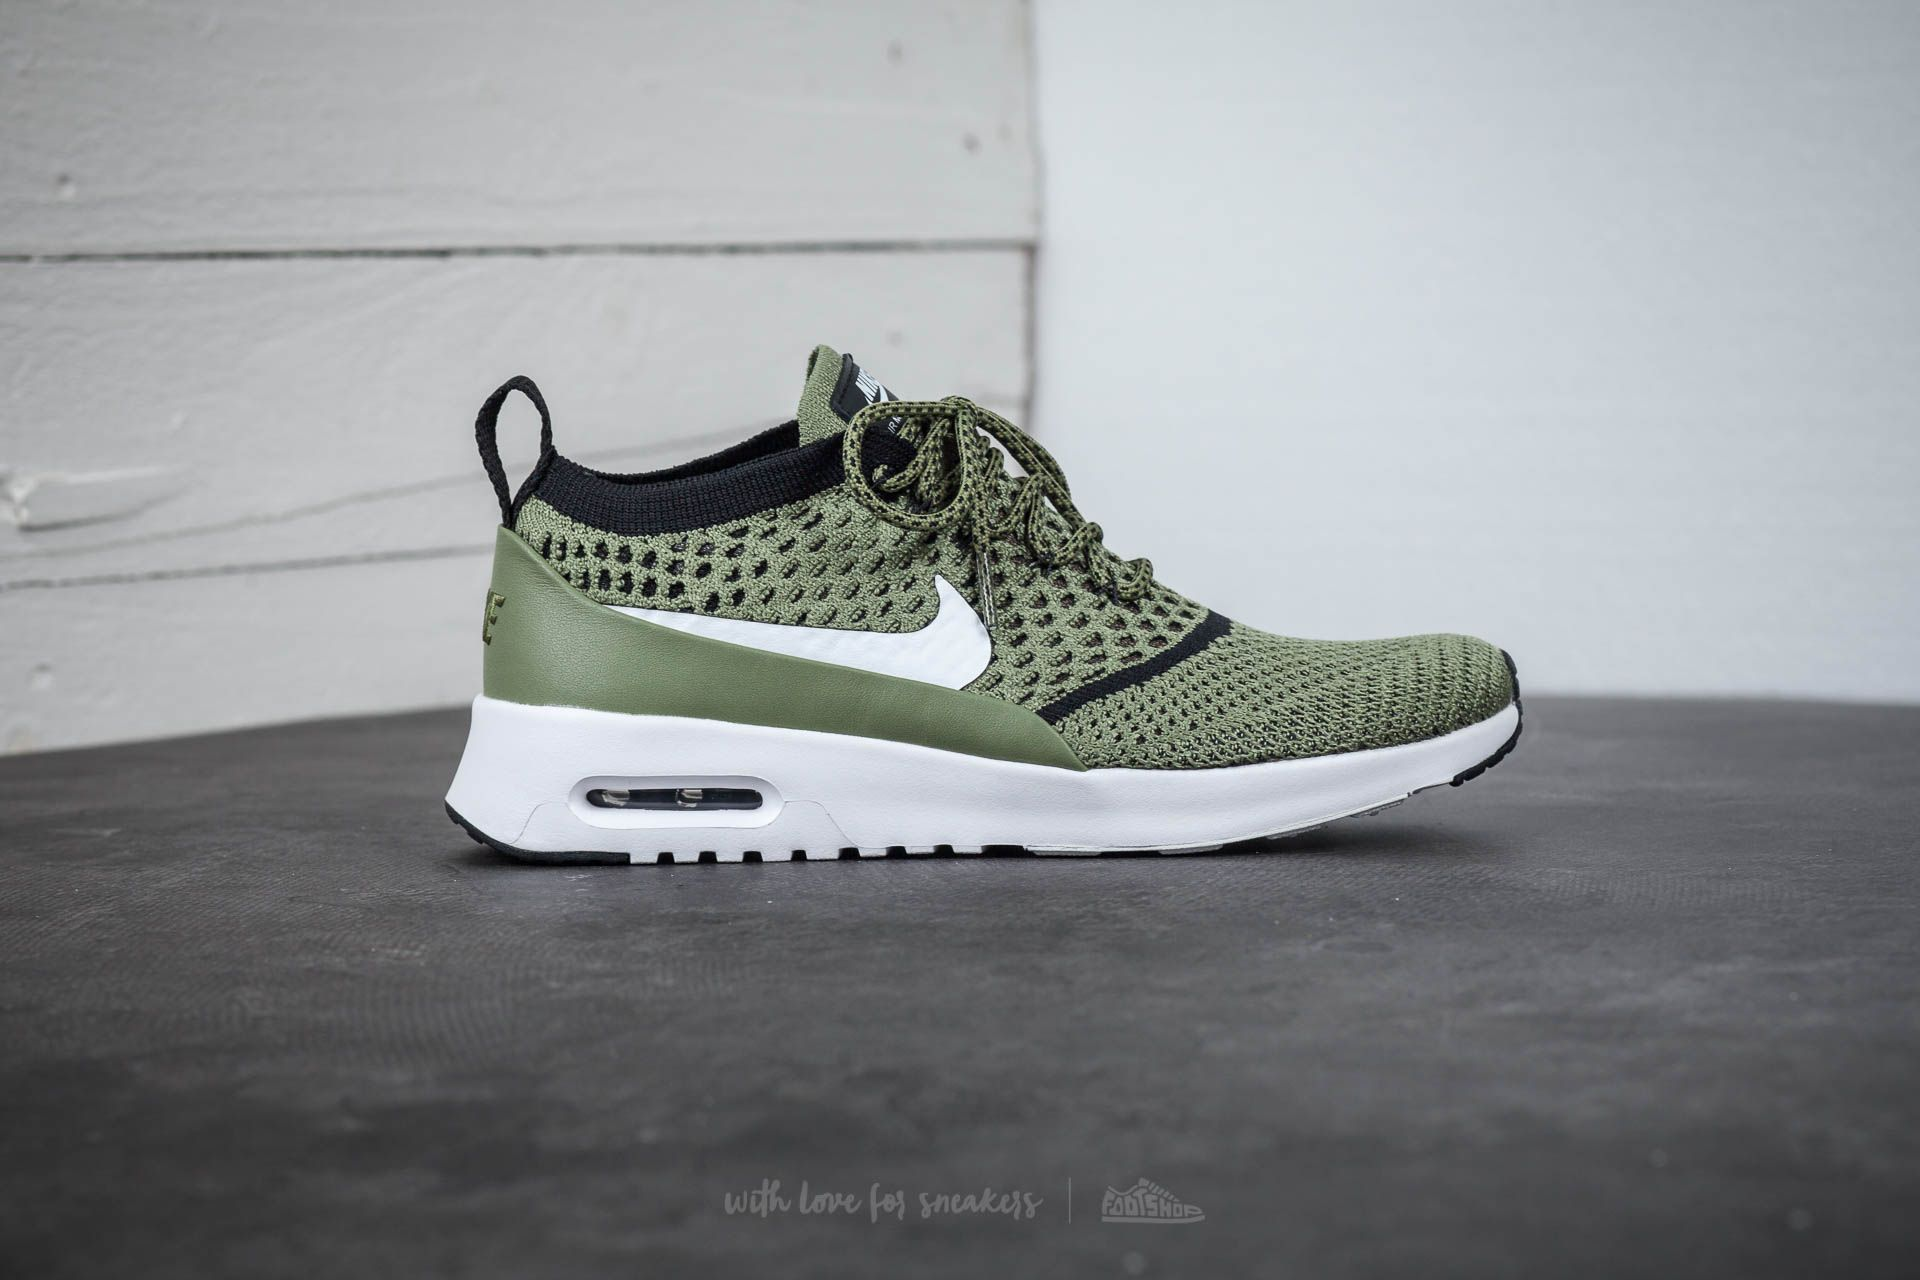 Nike Wmns Air Max Thea Ultra Flyknit Palm Green White Black | Footshop